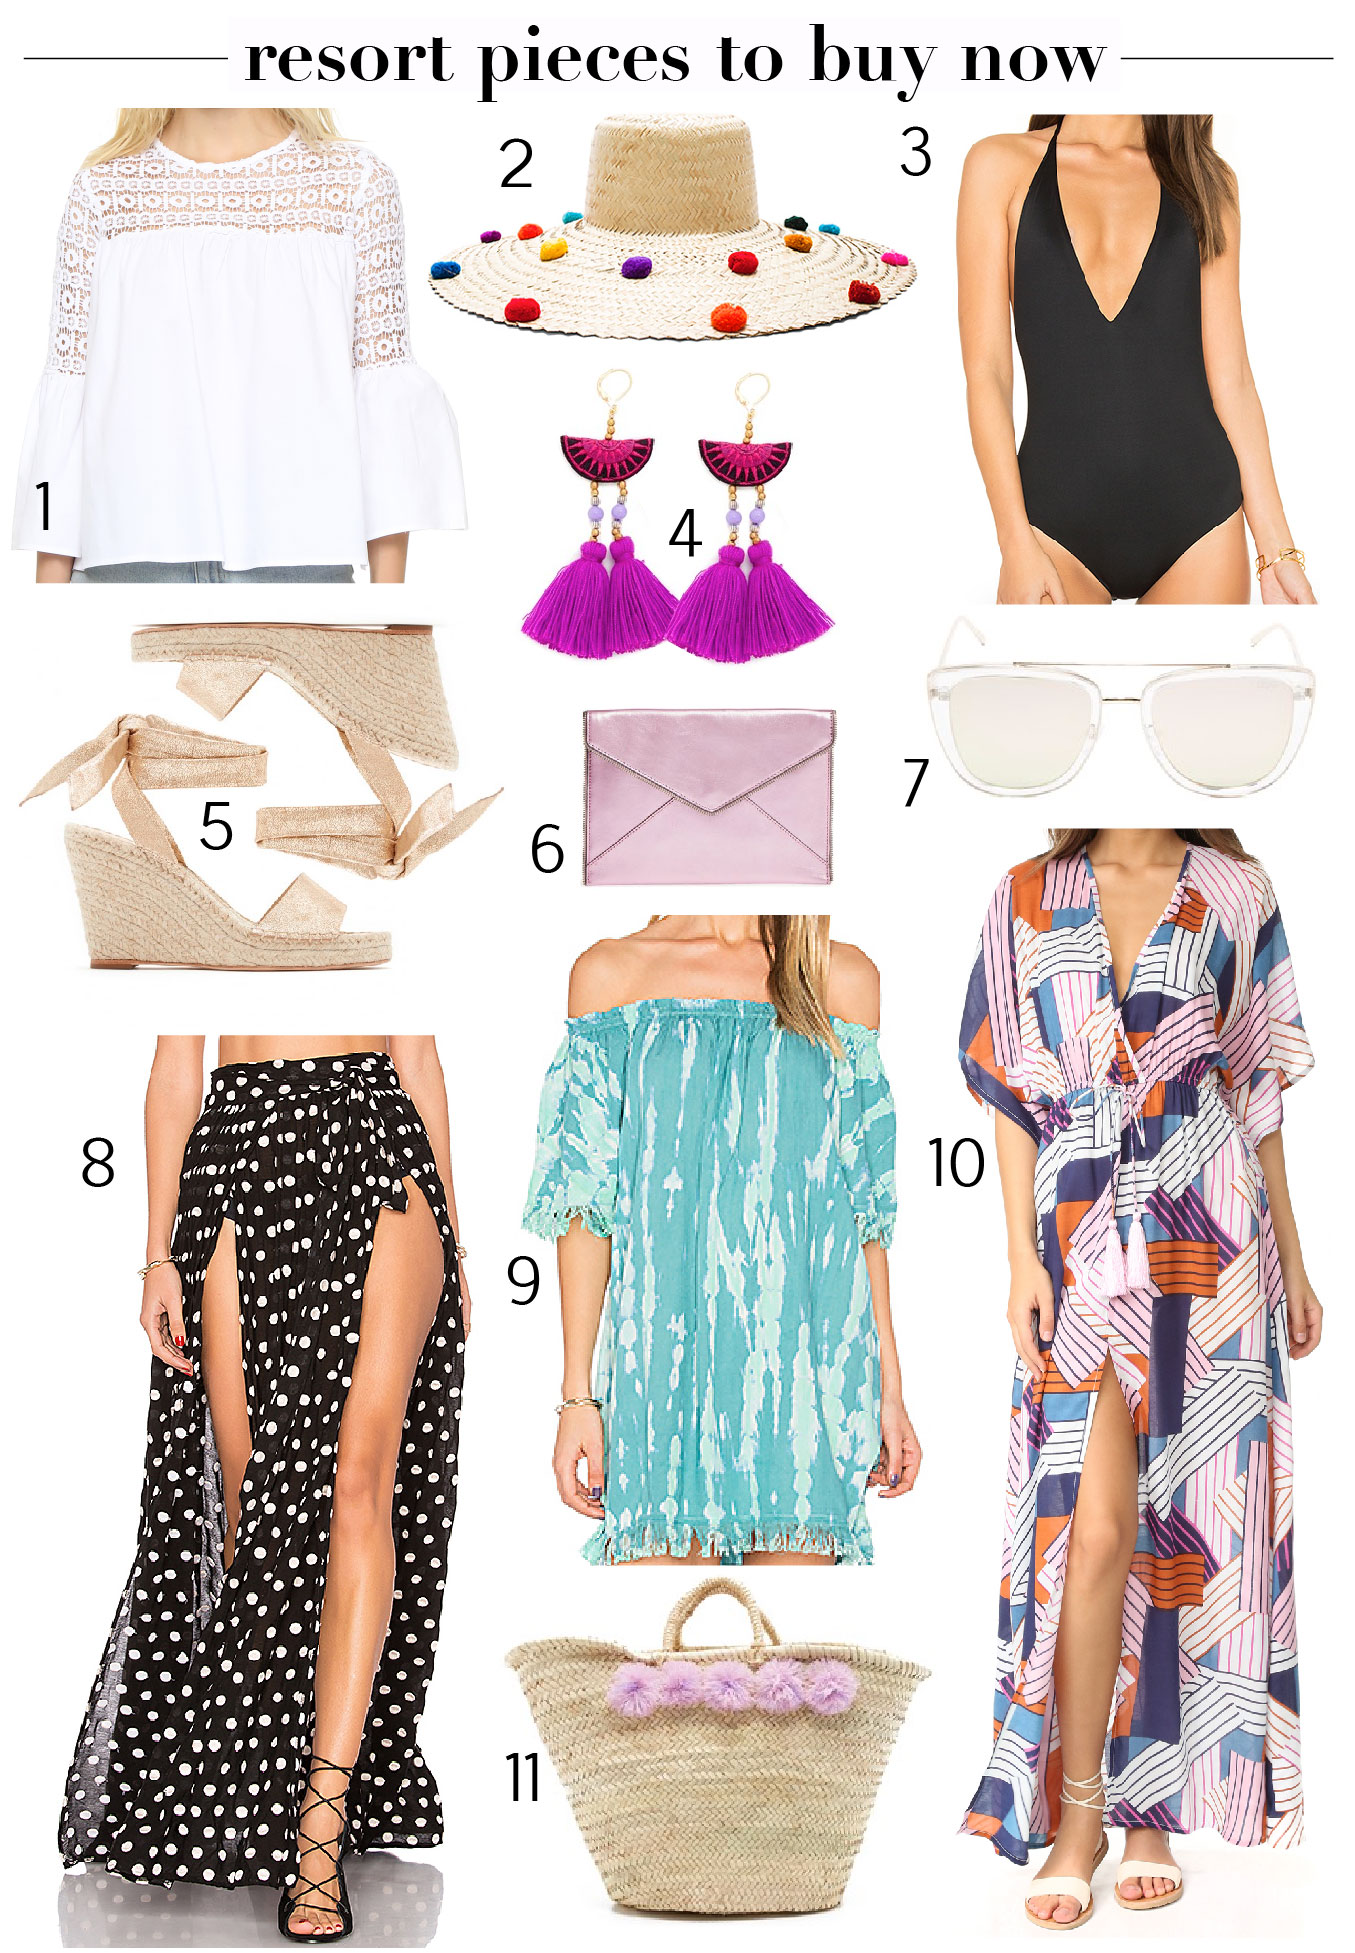 11 Resort Pieces to Buy Now. Yes to all of these!